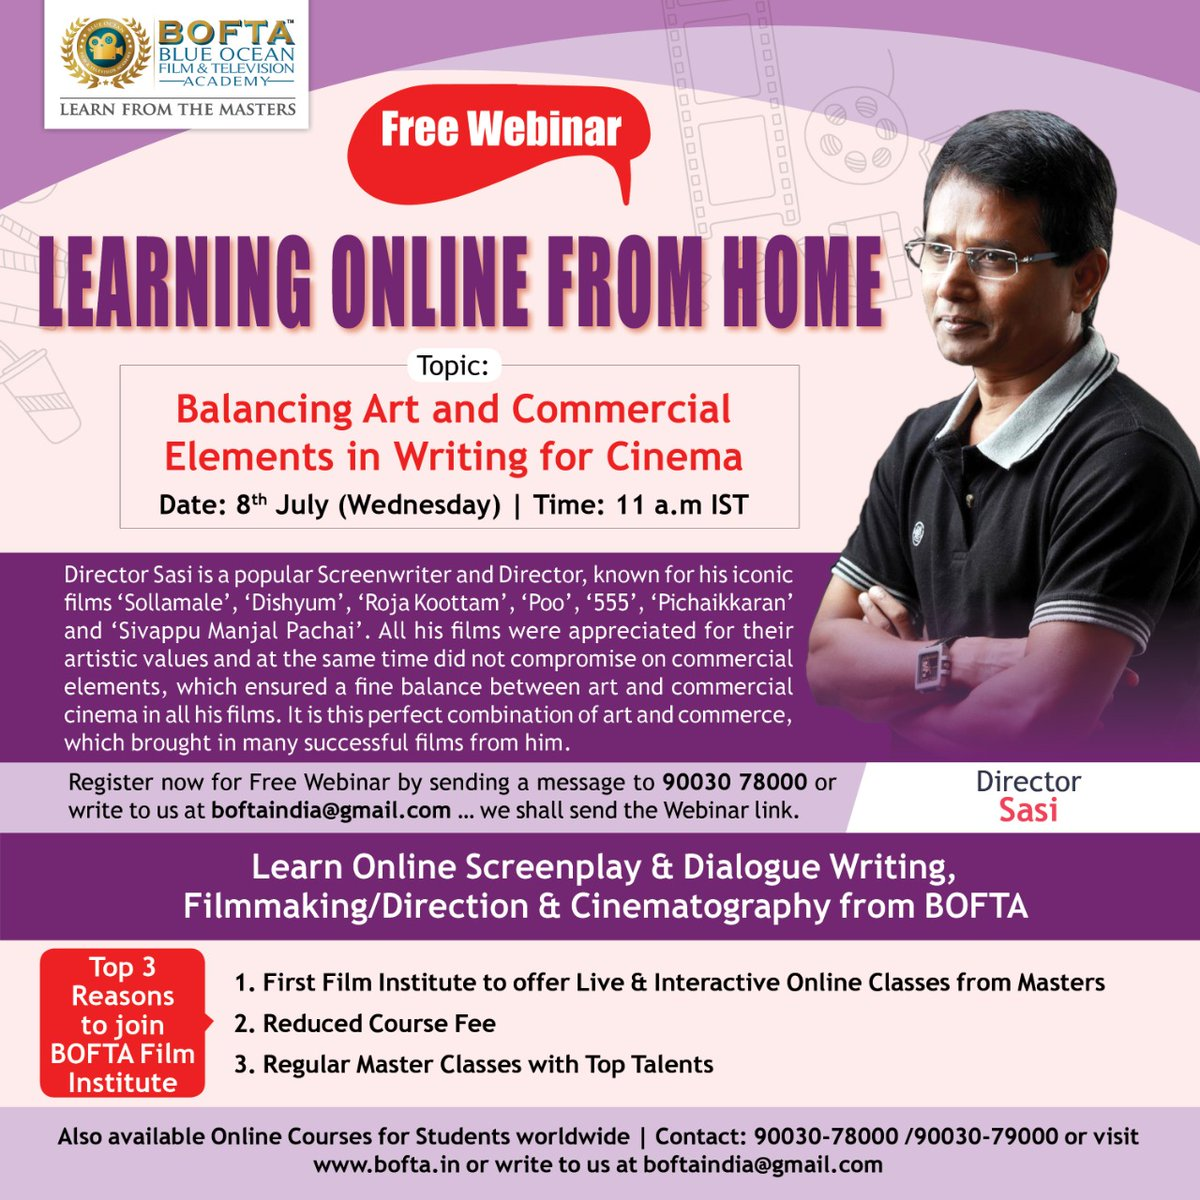 All set for the Webinar by Director #Sasi tomorrow at 11 am by @BOFTAindia ... dont miss the opportunity 👍👍👍